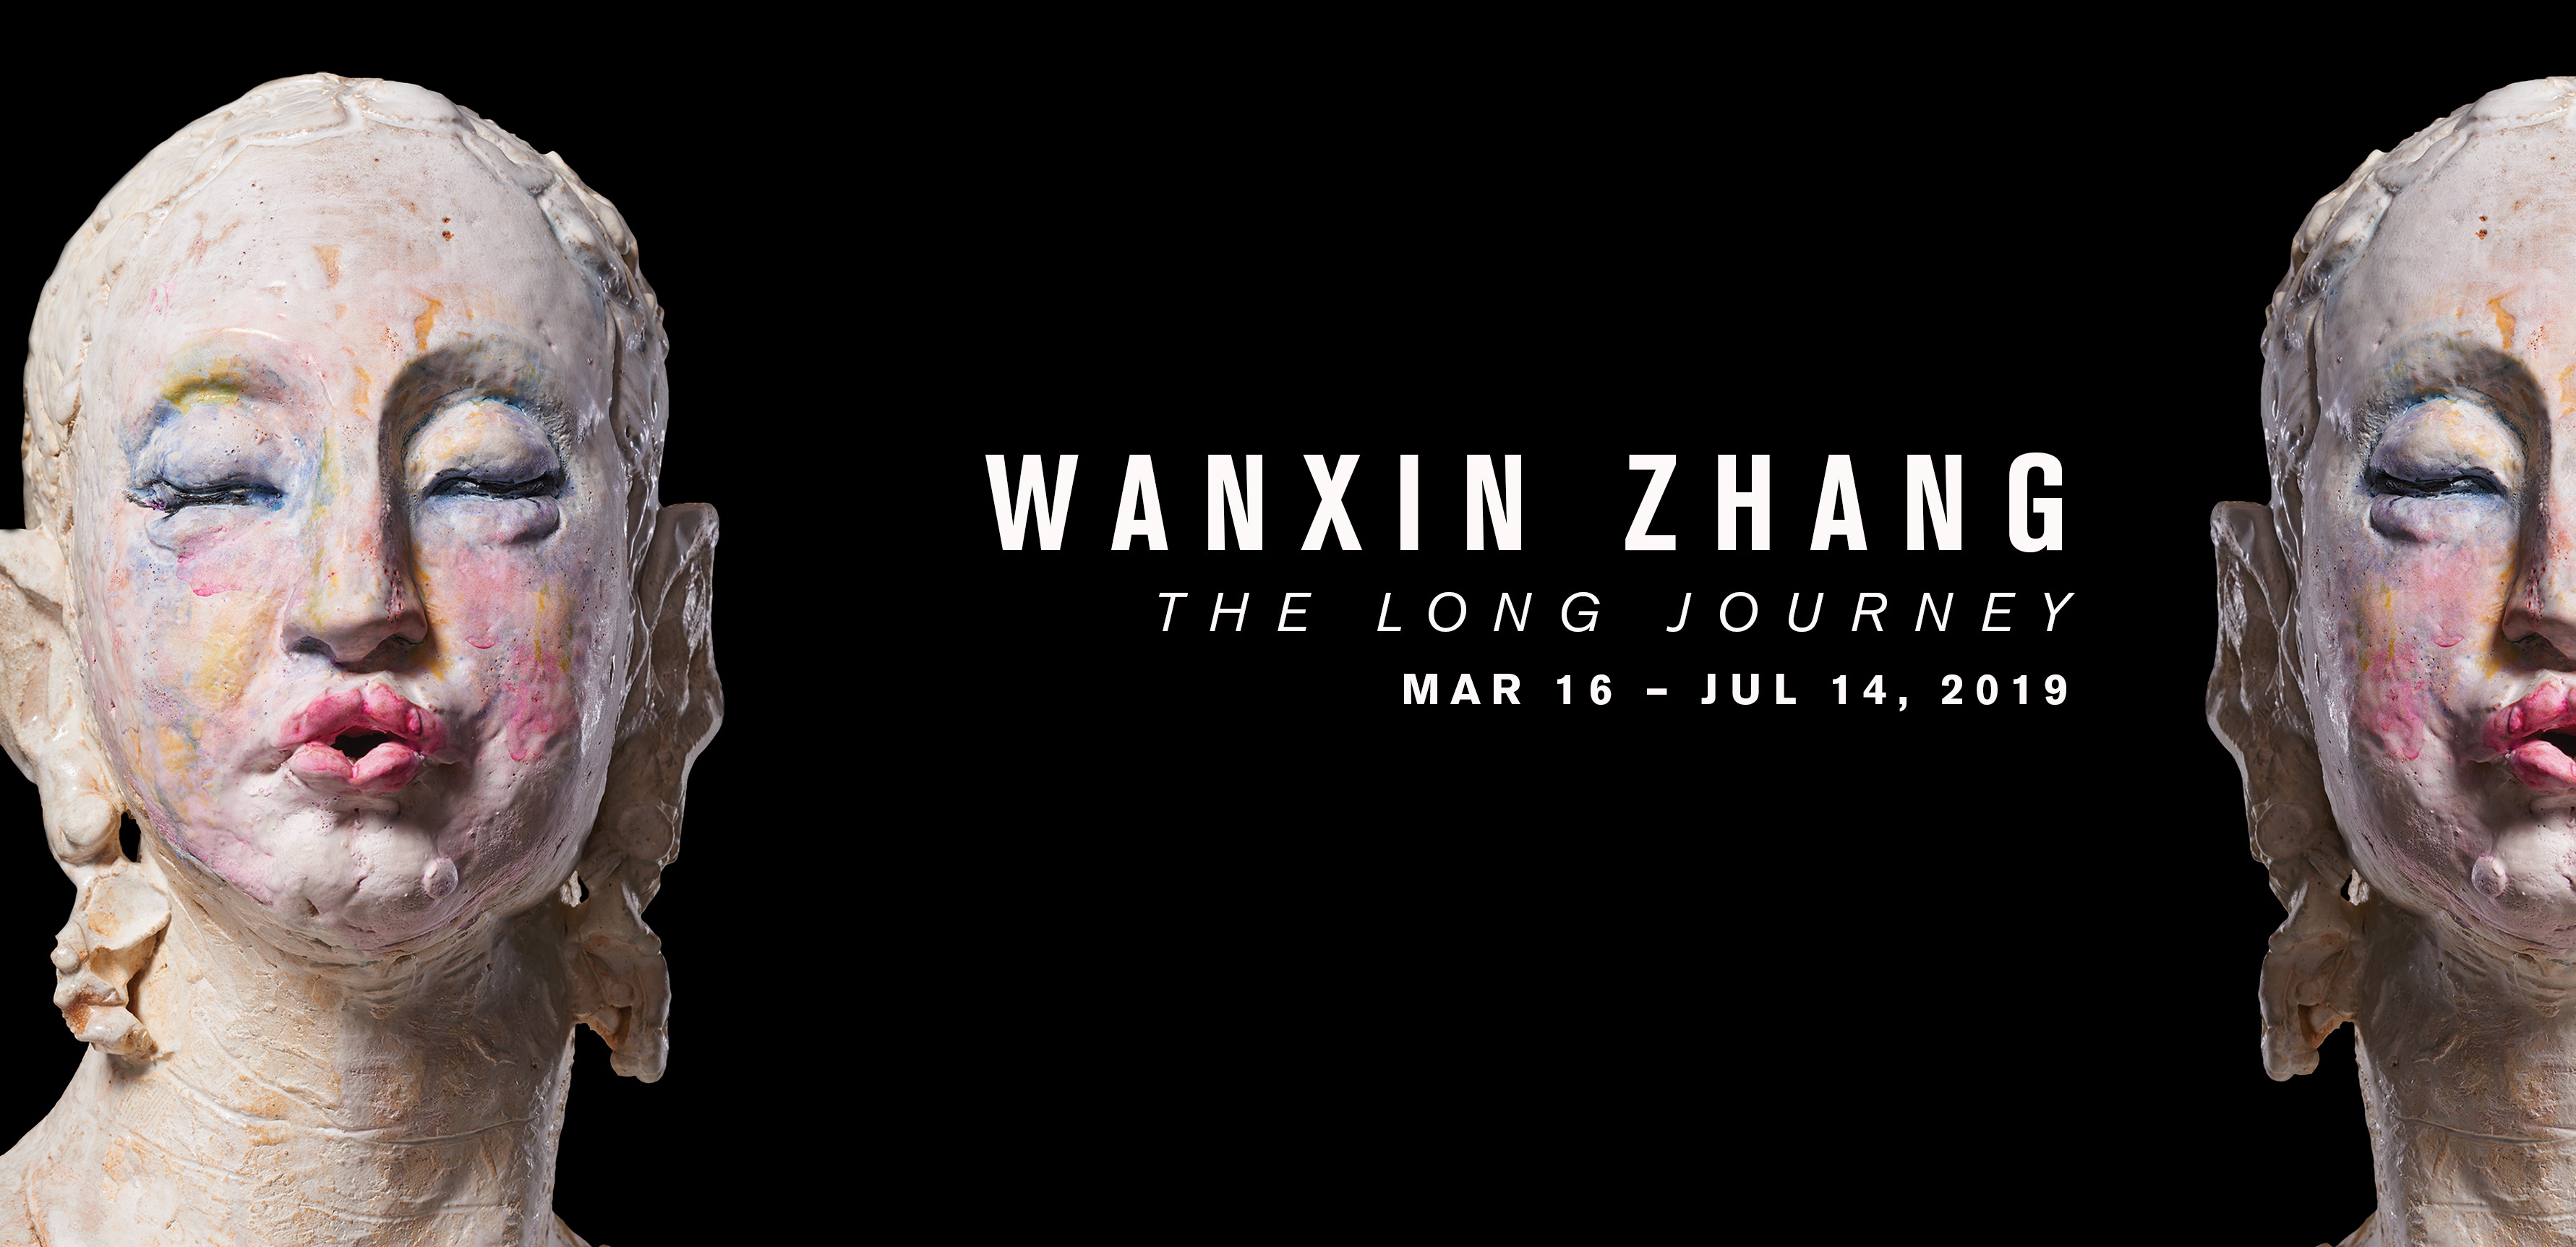 Wanxin Zhang: The Long Journey at the Museum of Craft and Design